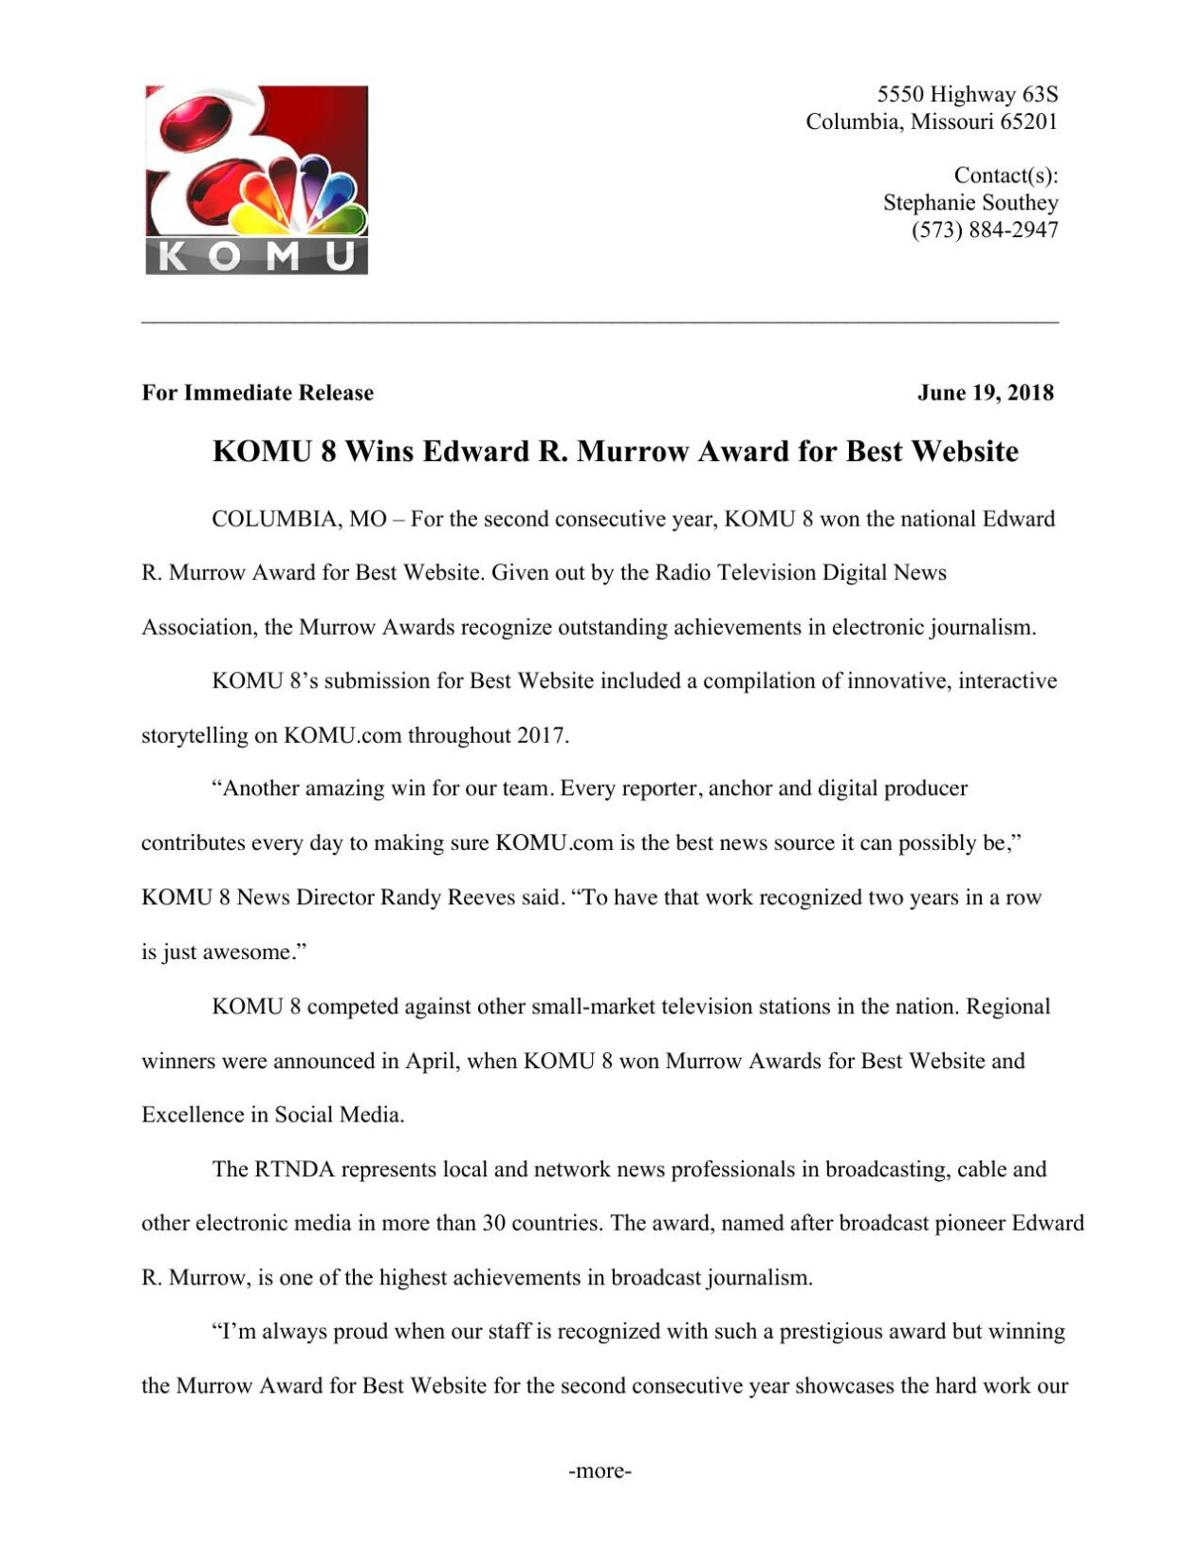 KOMU 8 2018 Edward R. Murrow Awards